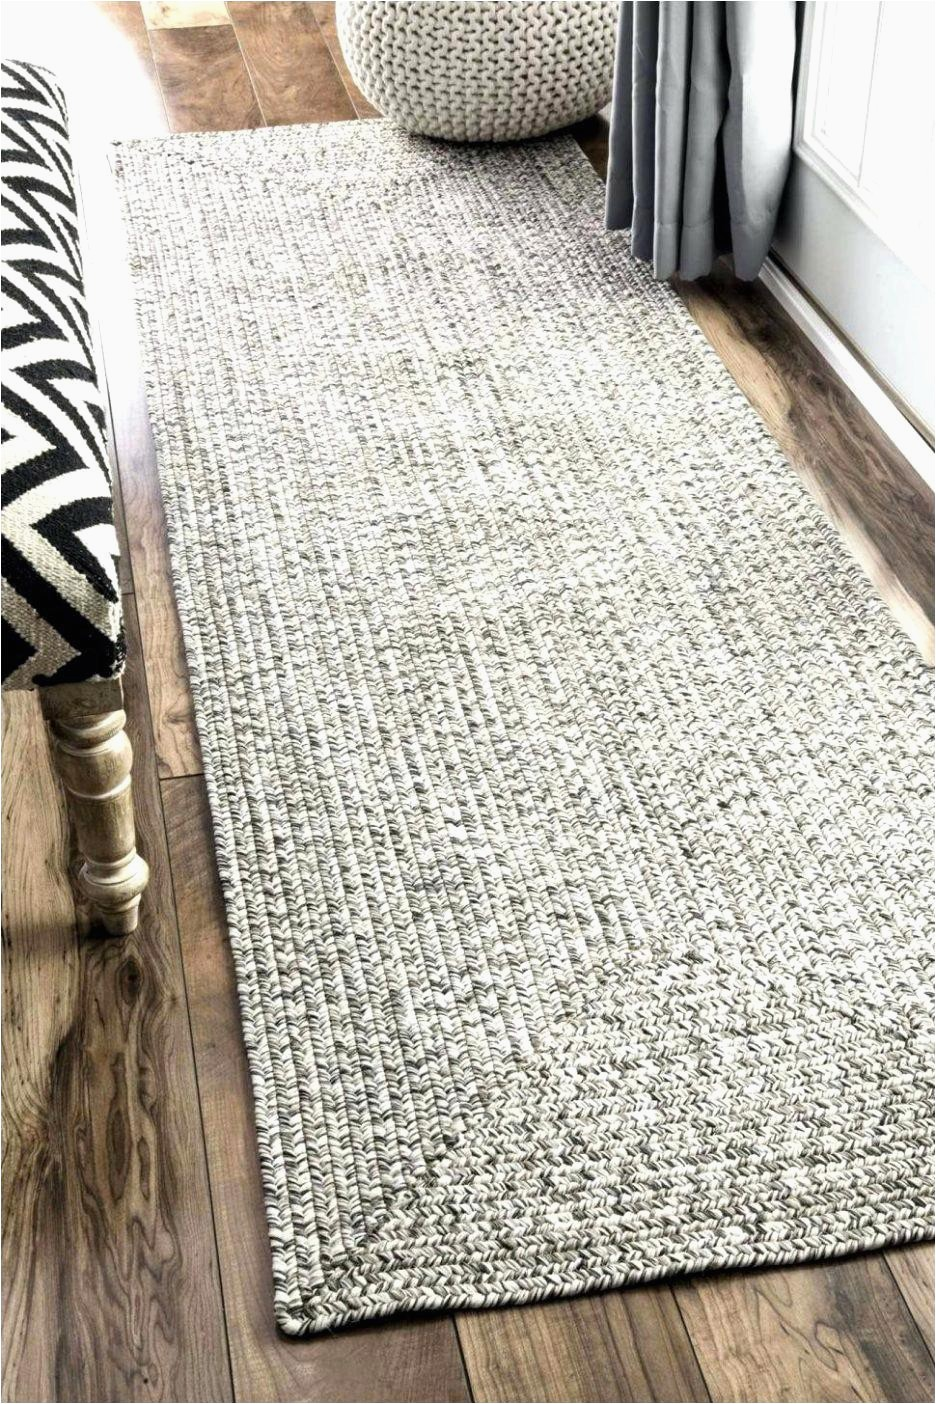 kitchen rugs tar beautiful on floor and audacious washable skid soft 22